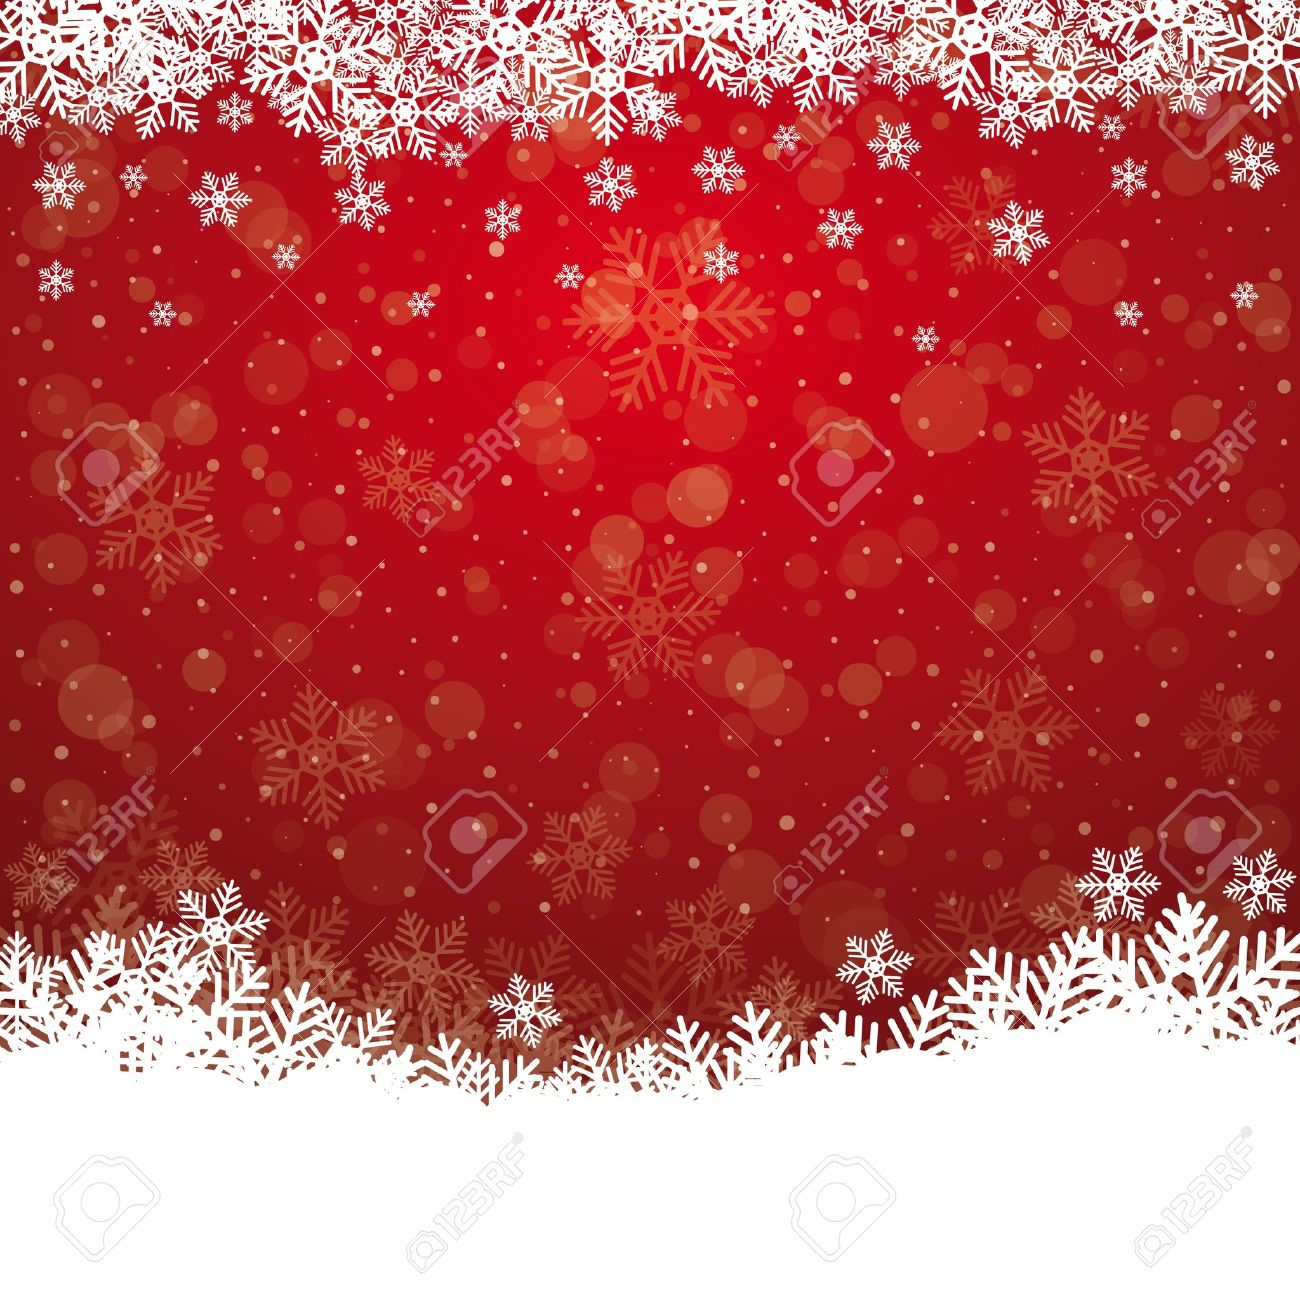 Fall Snowflake Snow Stars Red White Background Royalty Free ...